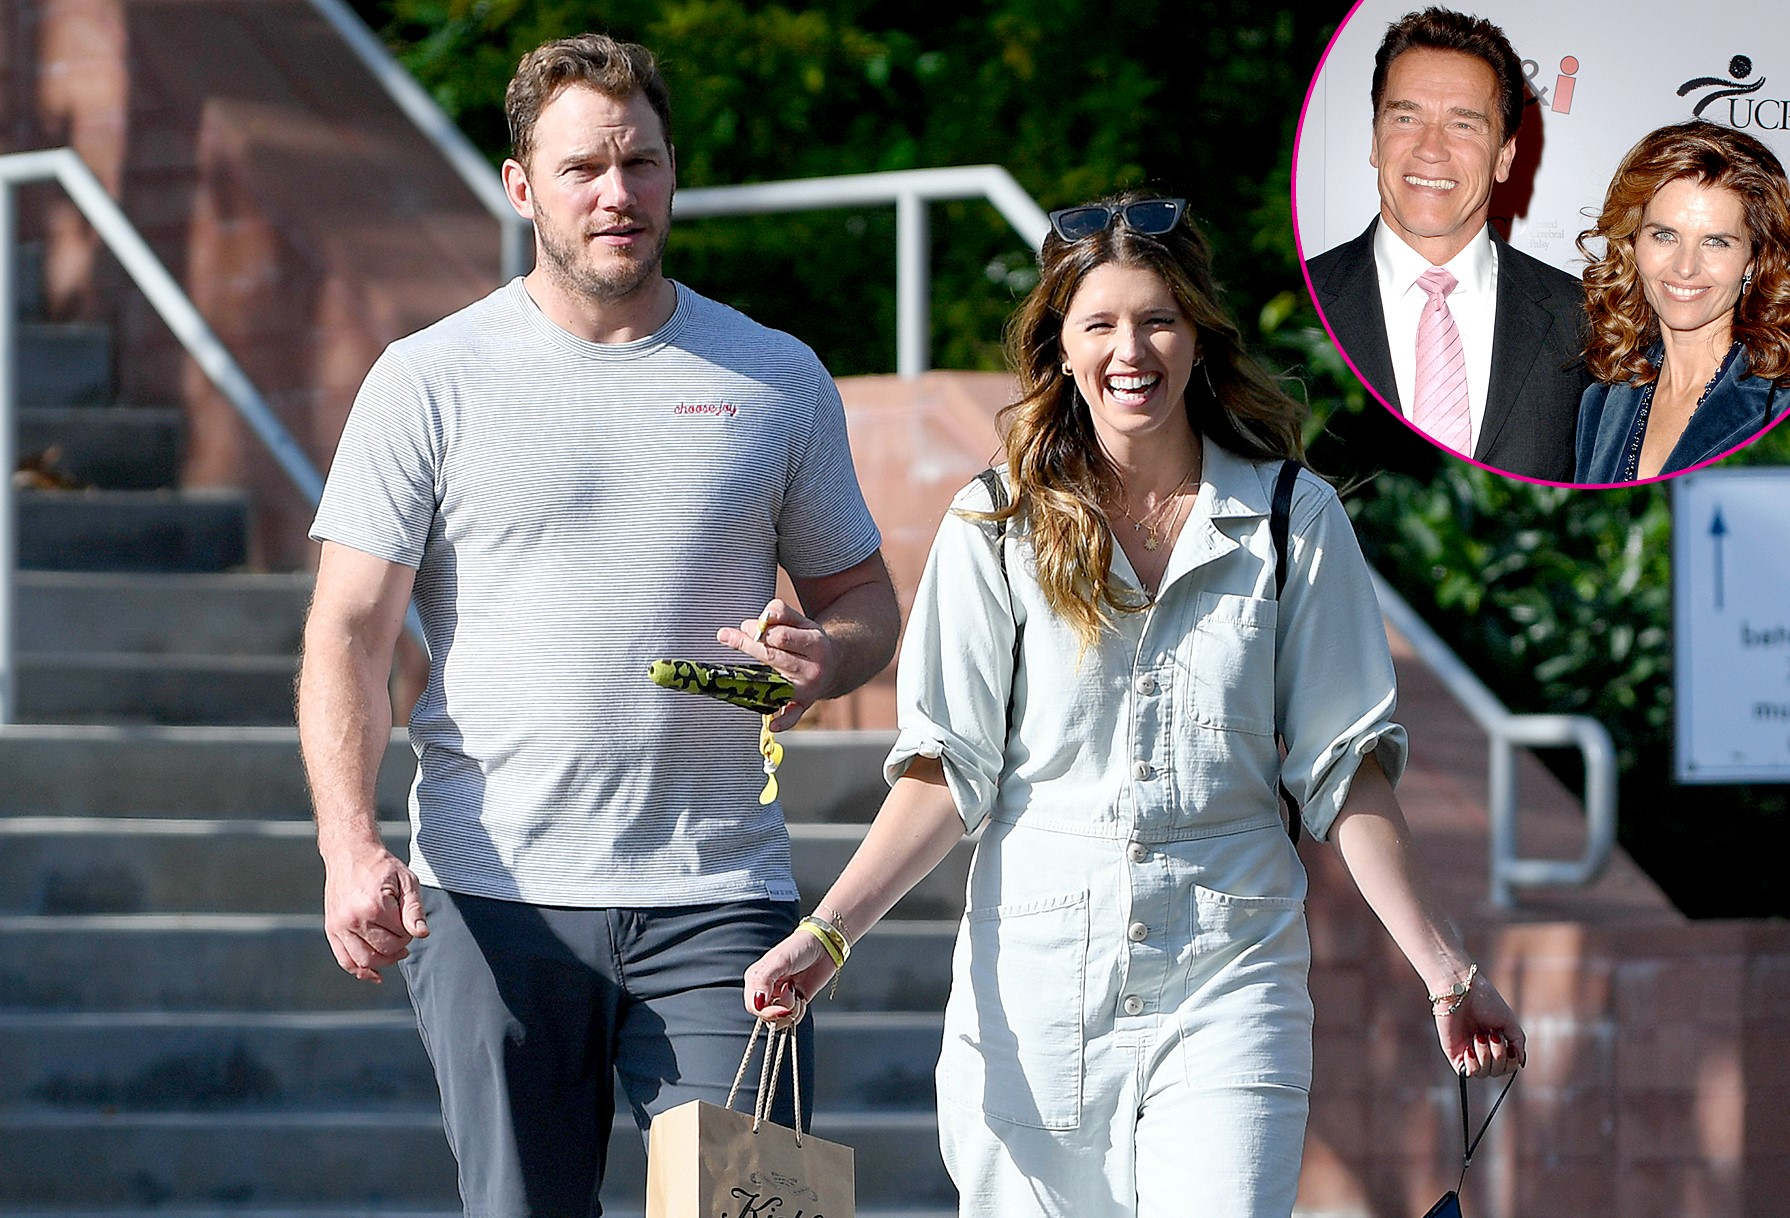 Schwarzenegger Gives Permission To Chris Pratt To Marry His Daughter – Still Silent On Social Media